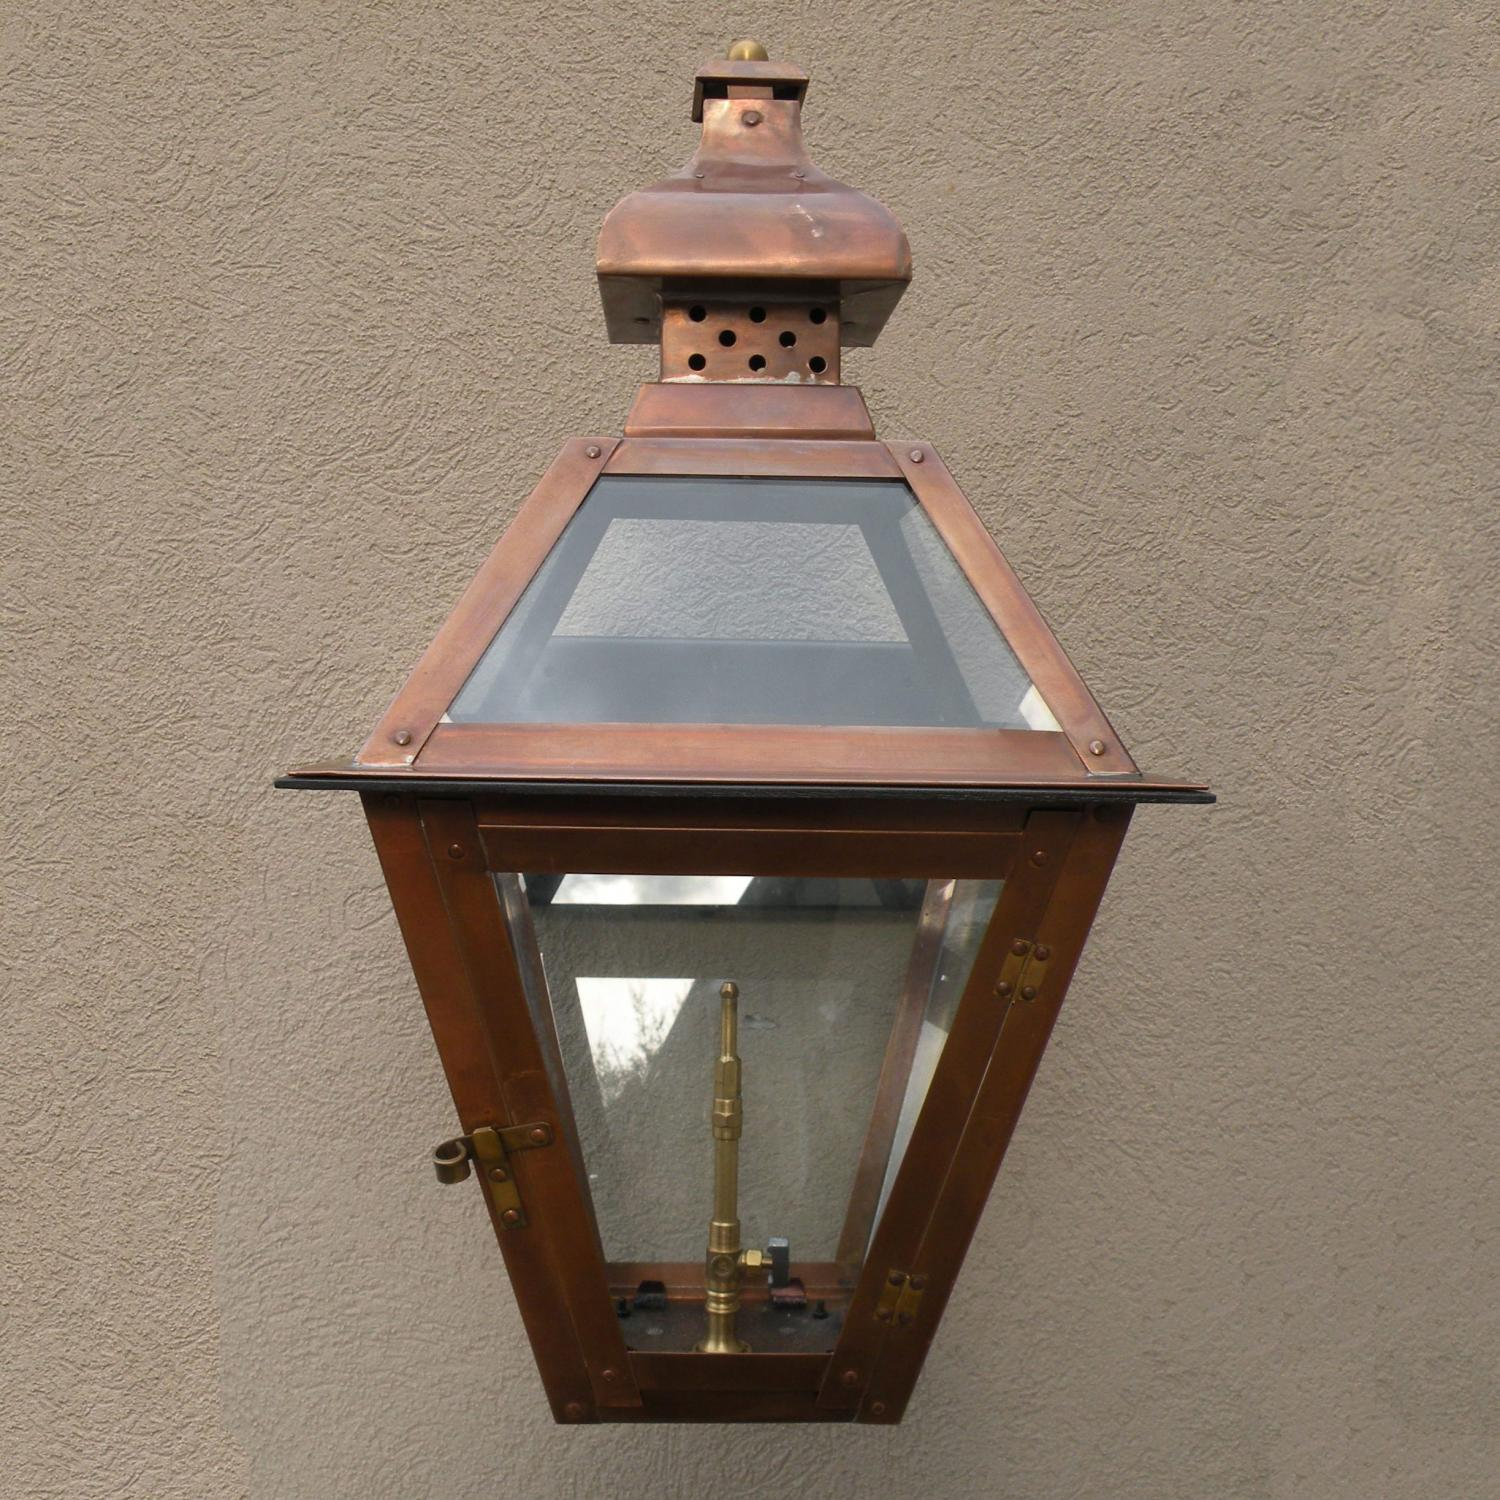 Wall Mount Propane Lamp : Legendary Lighting Atlas 1 Copper Natural Gas Light With Wall Bracket And Electronic Ignition U ...